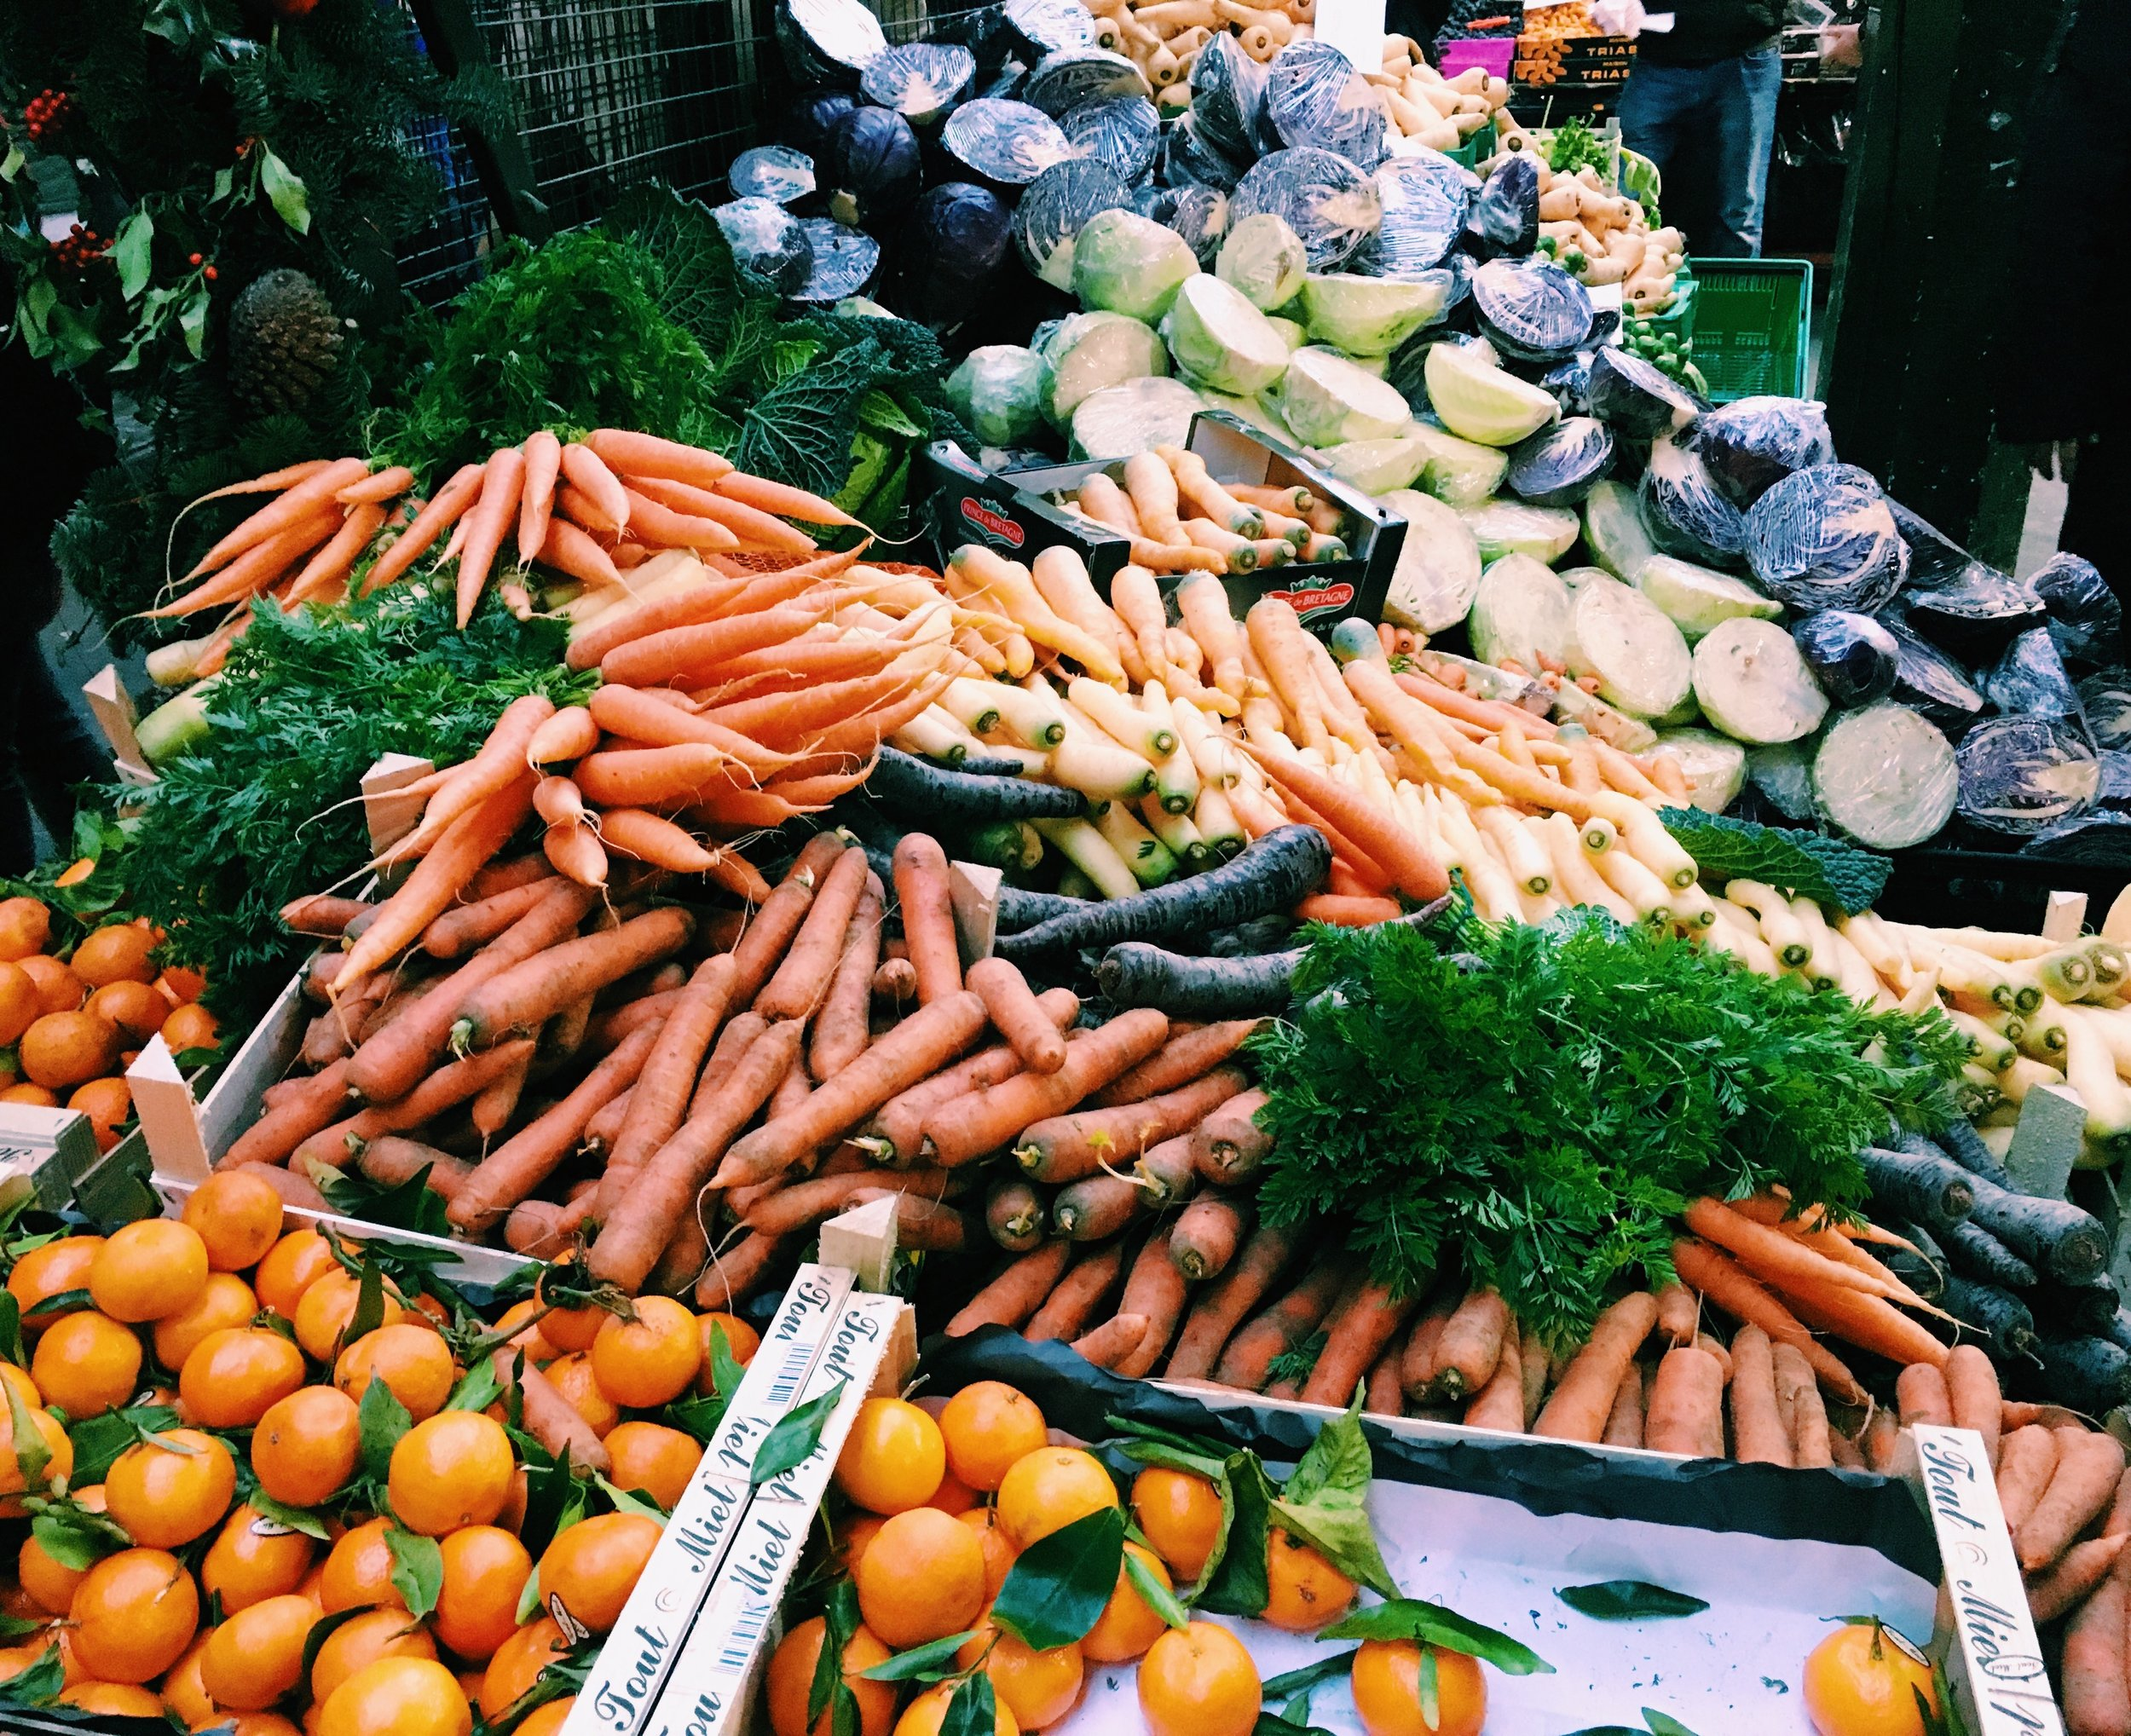 Fresh produce at Borough Market, London